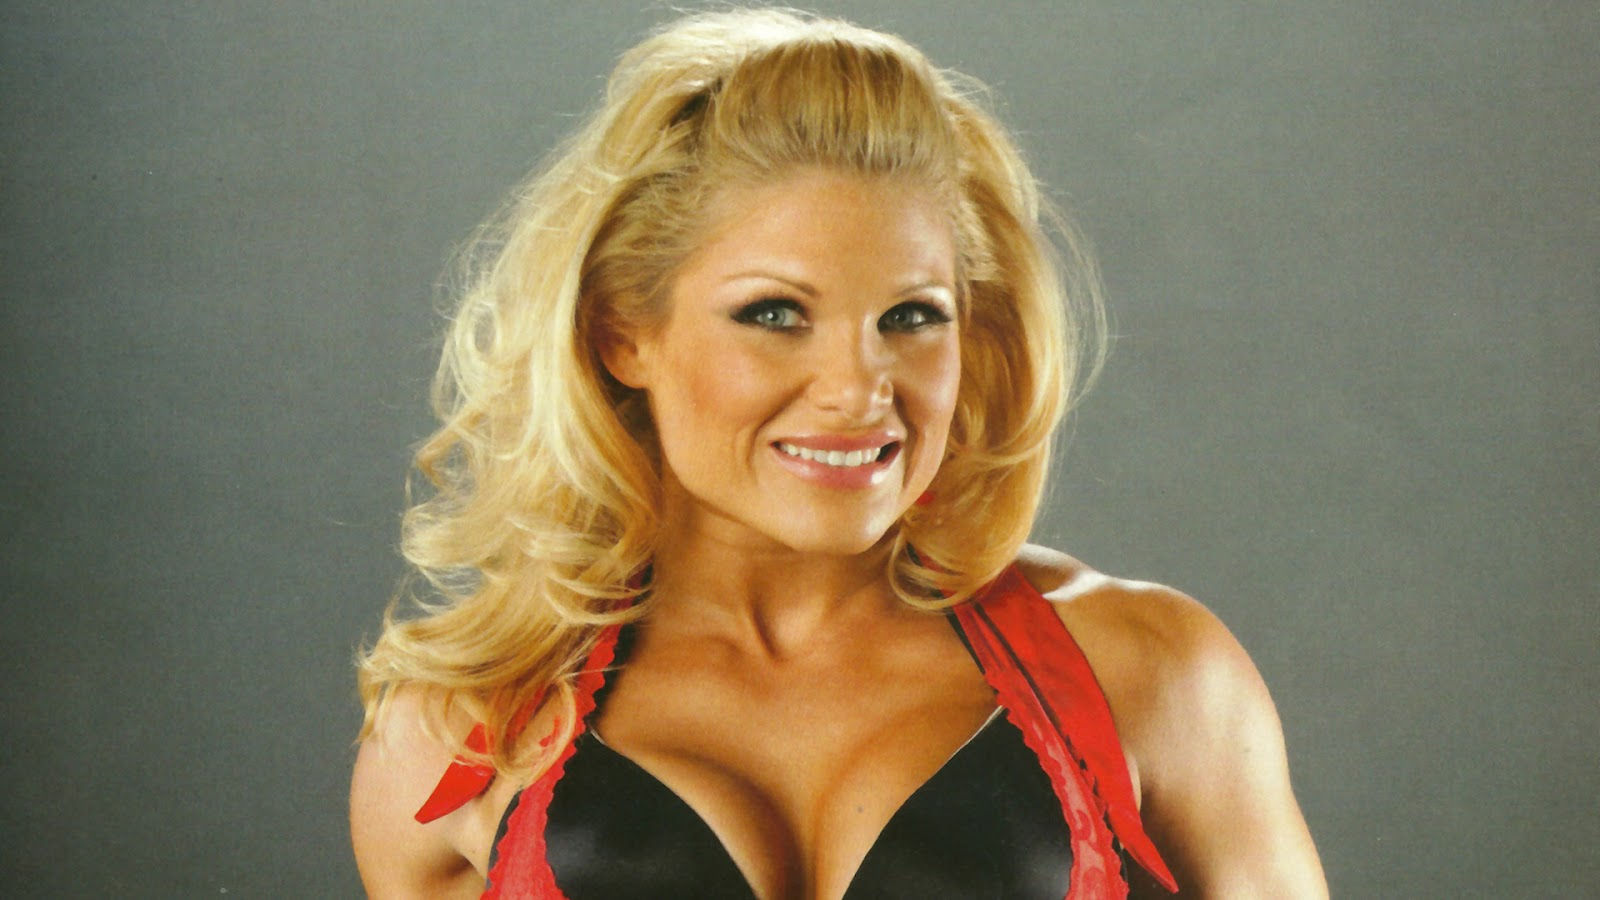 beth phoenix wwe - photo #24